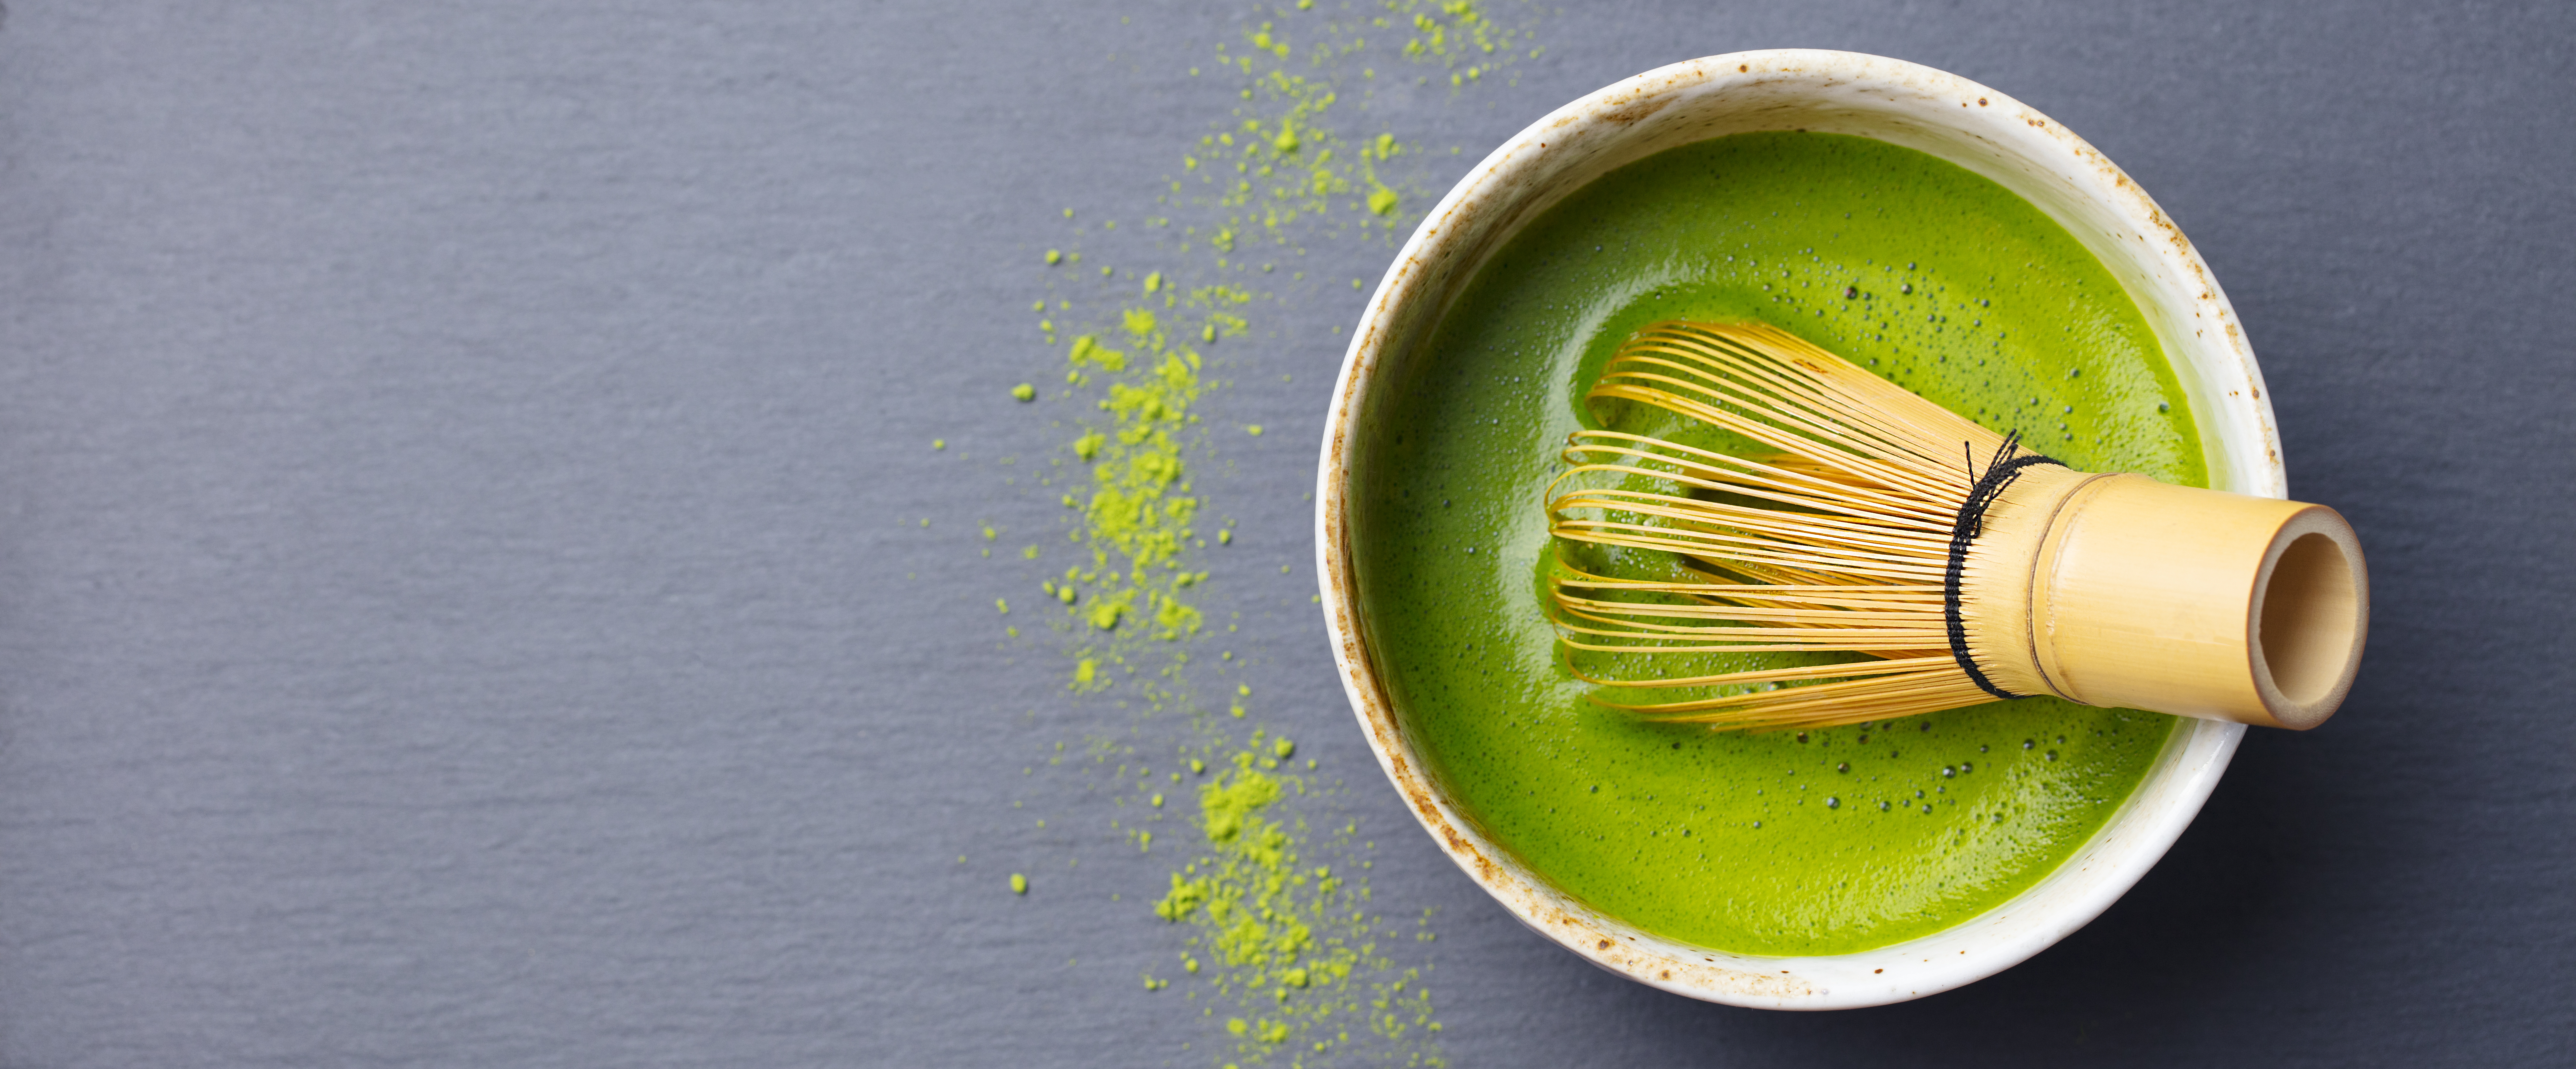 Matcha Green Tea - Health Benefits and What You Should Know